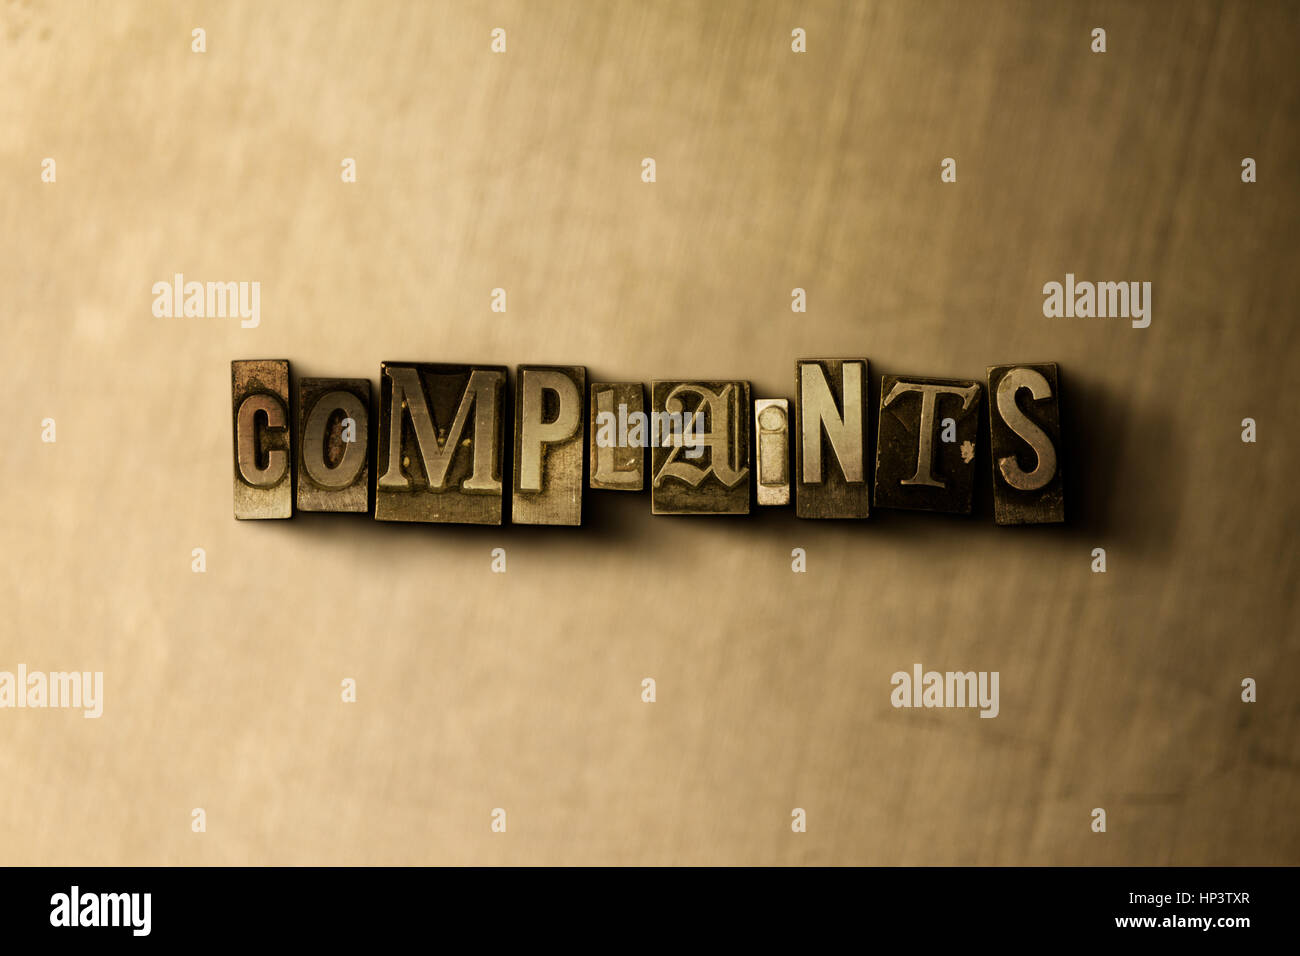 COMPLAINTS - close-up of grungy vintage typeset word on metal backdrop. Royalty free stock illustration.  Can be - Stock Image